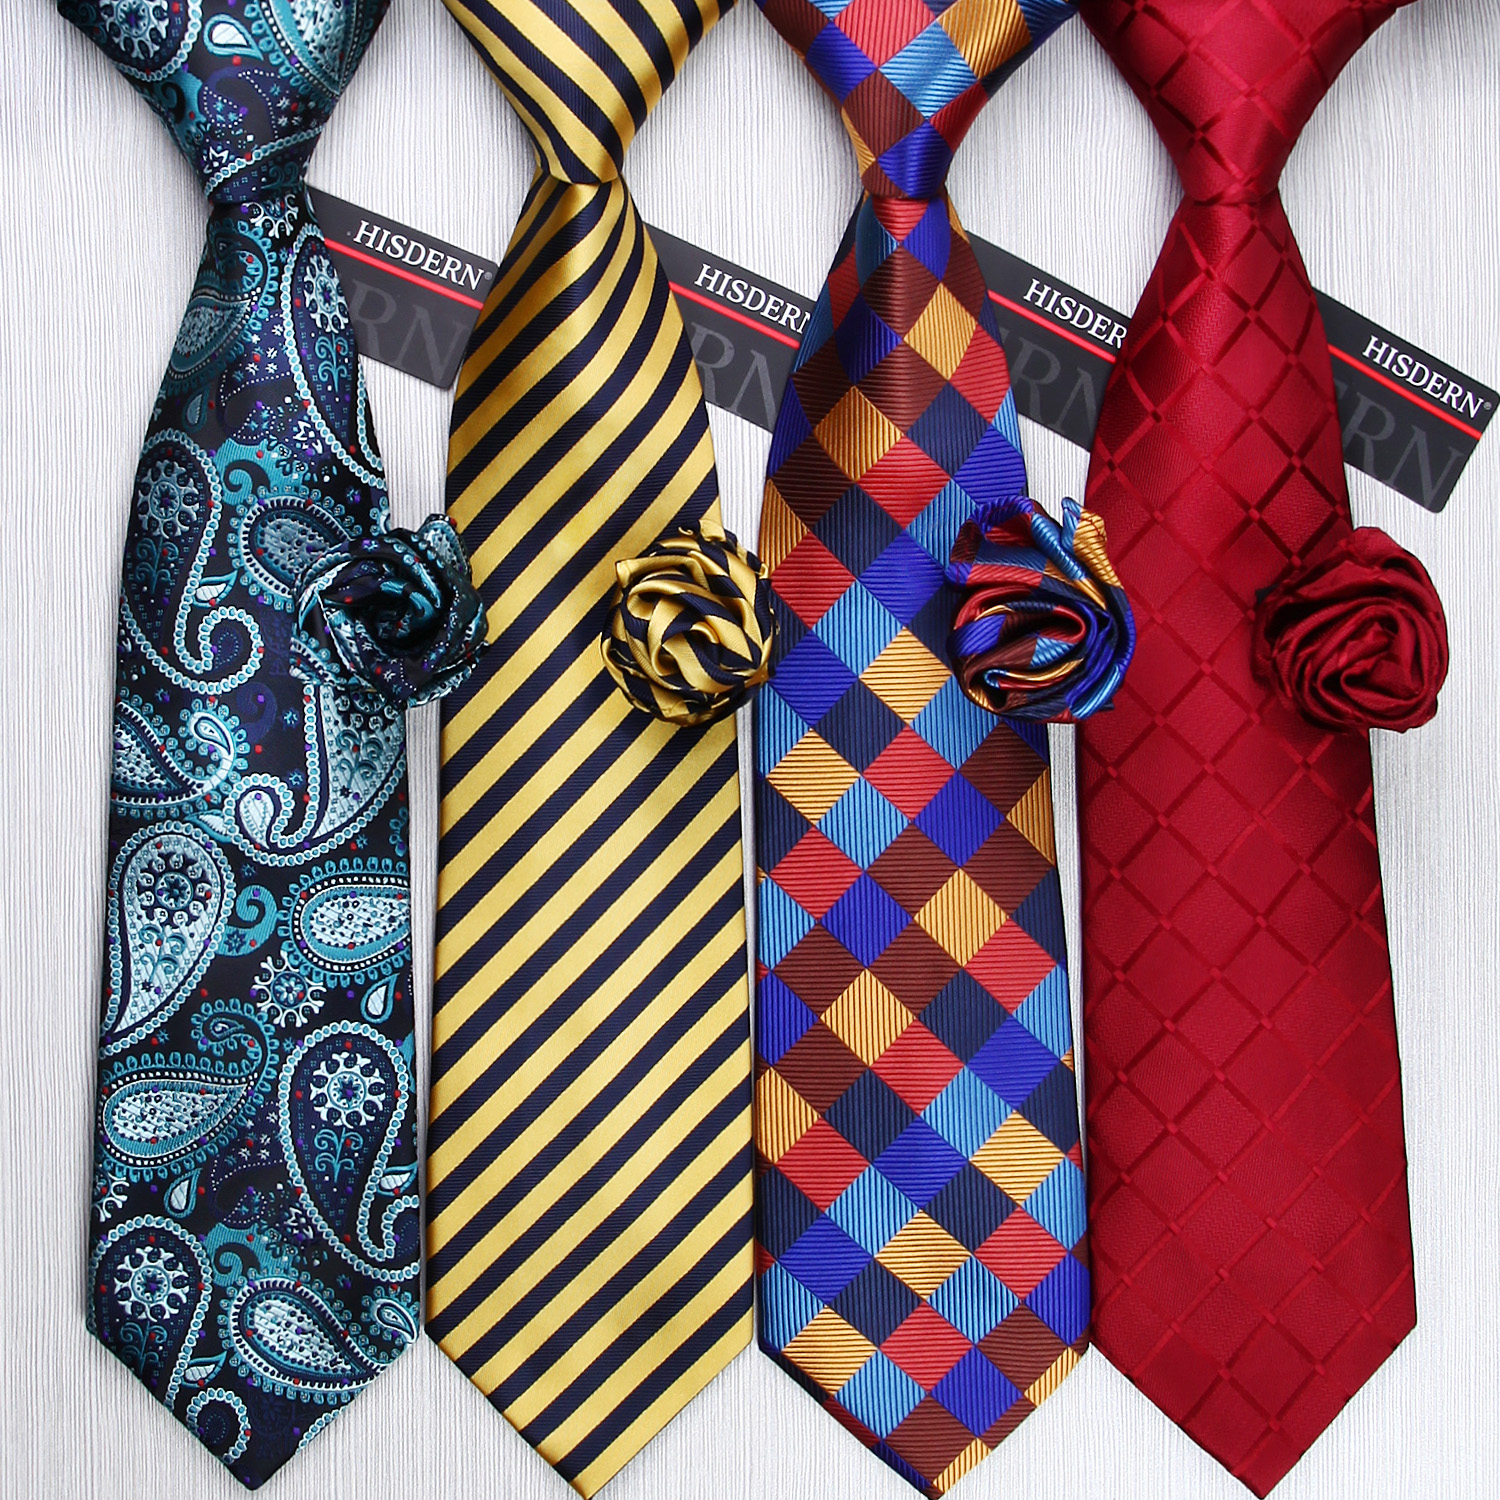 Men Ties Designers Fashion 20 Style Necktie Woven Gravata 3.4